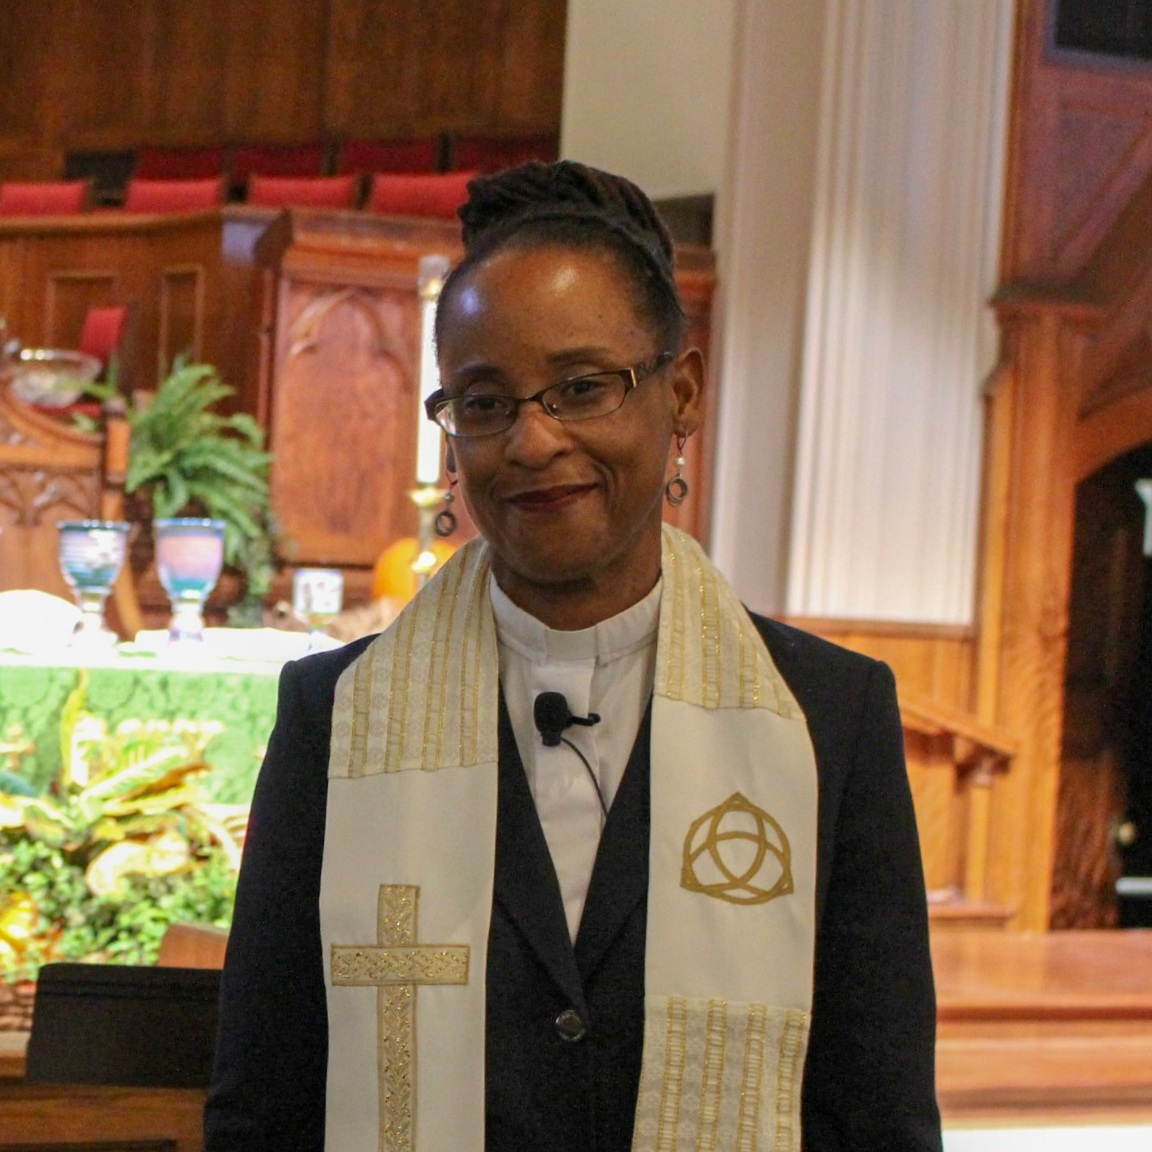 Rev. Kennetha J. Bigham-Tsai - Rev. Kennetha J. Bigham-Tsai, Chief Connectional Ministries Officer of The Connectional Table, came to the CT as a board member in 2012. She provided leadership on the executive committee, as chair of Leadership Discernment and Community Life, as chair of the writing team on human sexuality and in work on the worldwide nature of the church. Prior to her current role on the CT, Bigham-Tsai served on the Michigan Annual Conference Cabinet as chief missional strategist. She also served local churches and in many leadership positions within her annual conference and at the general church level, including as a delegate to General and Jurisdiction conferences since 2012 and as co-chair of the Michigan delegation for the 2020 General Conference. Bigham-Tsai is a sought-after speaker who has a passion for the growth and vitality of The United Methodist Church and for equity and justice for all. She and her husband, Kee Tsai, have two children, Keeton and Kamden.